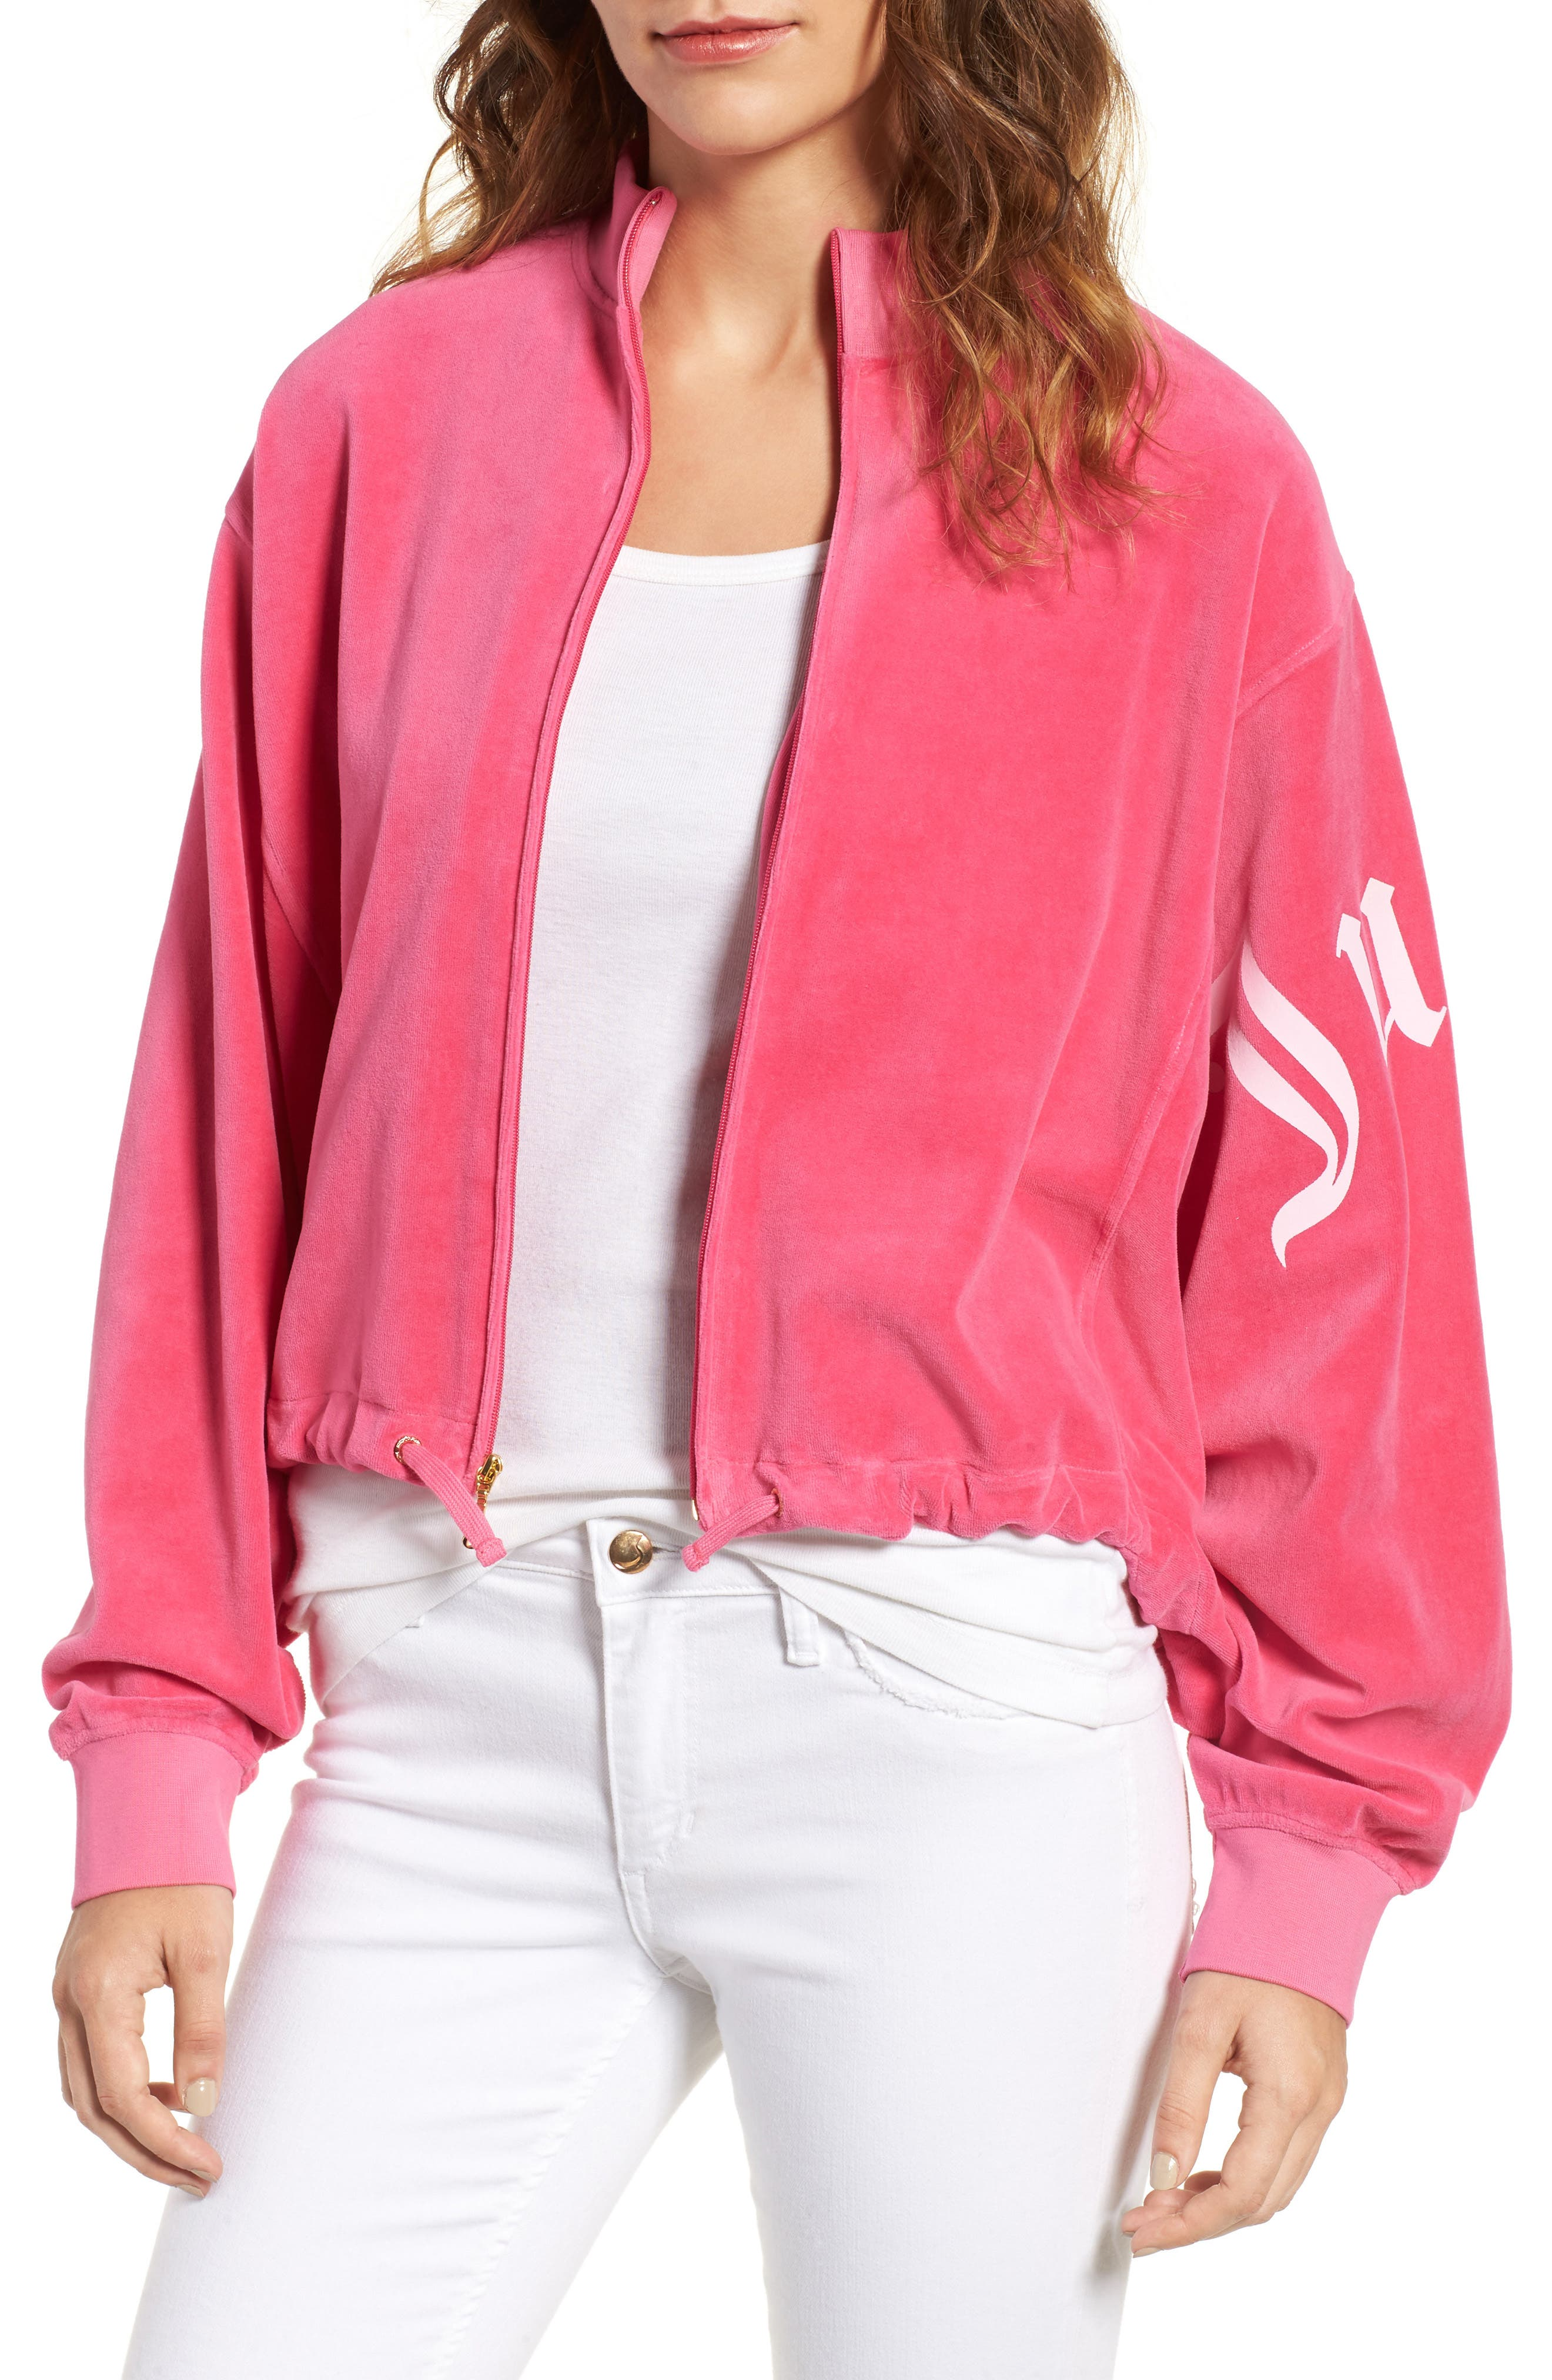 Main Image - Juicy Couture Velour Batwing Track Jacket